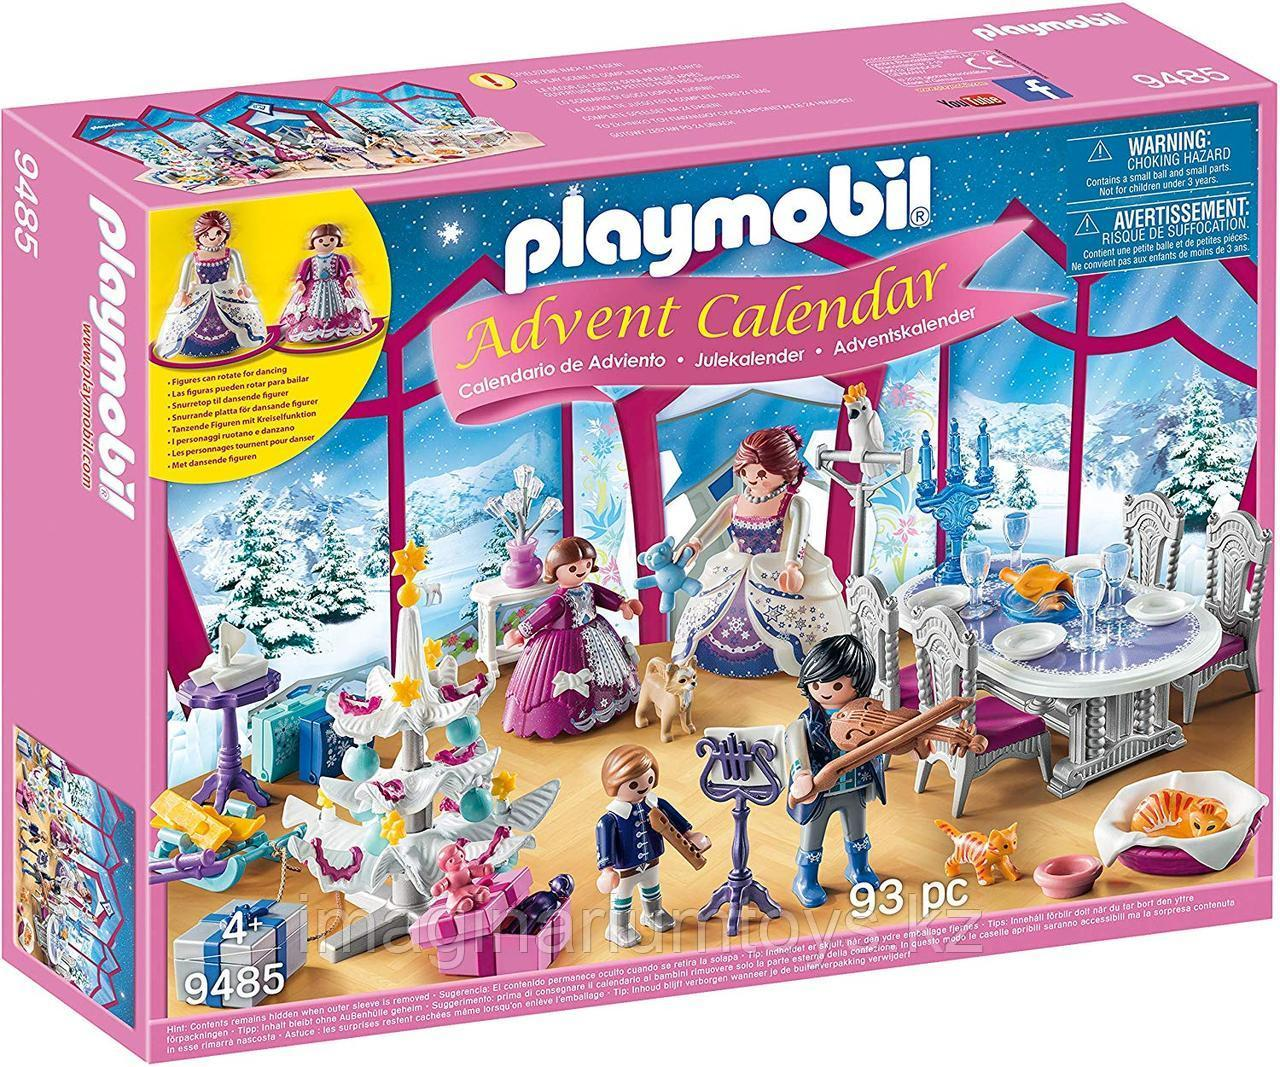 Playmobil Advent Calendar  9485 Адвент календарь «Рождественский бал»